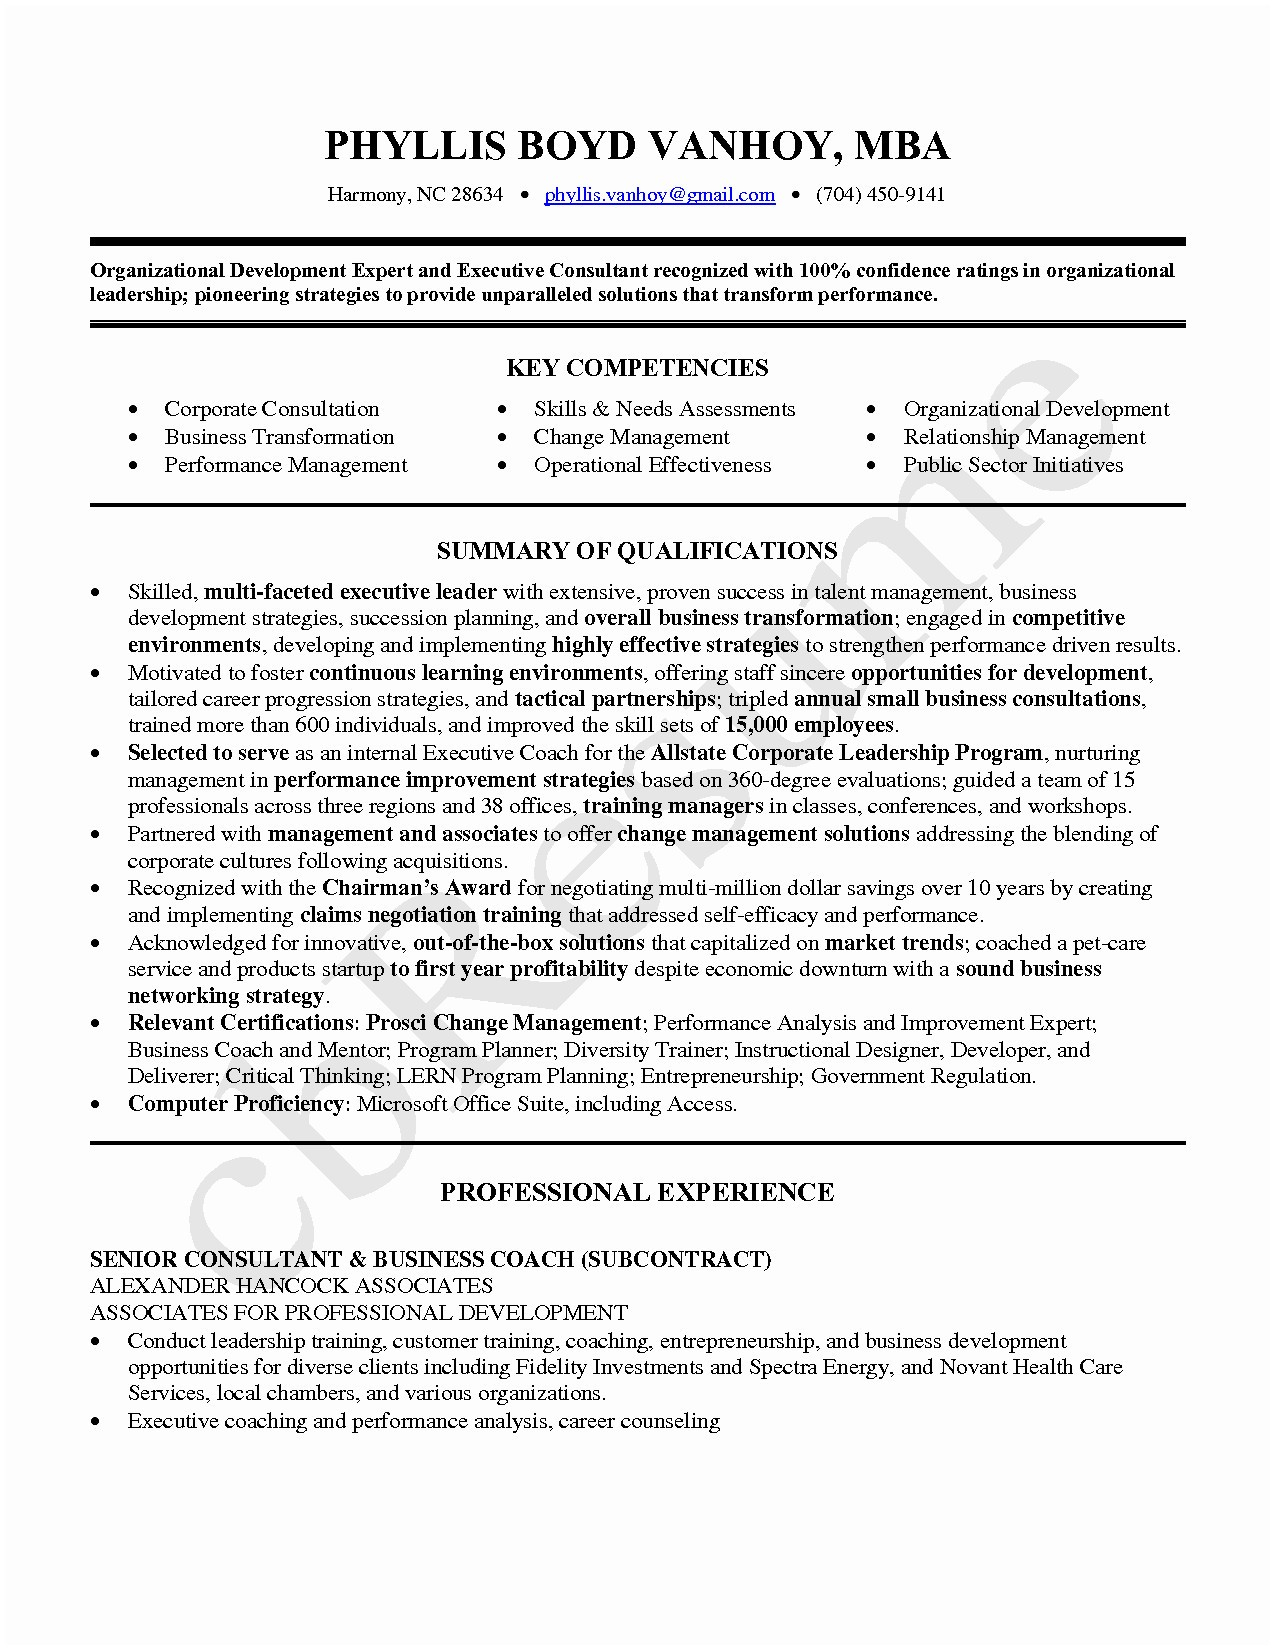 Customer Service Cover Letter Template - Cover Letter Examples for Customer Service